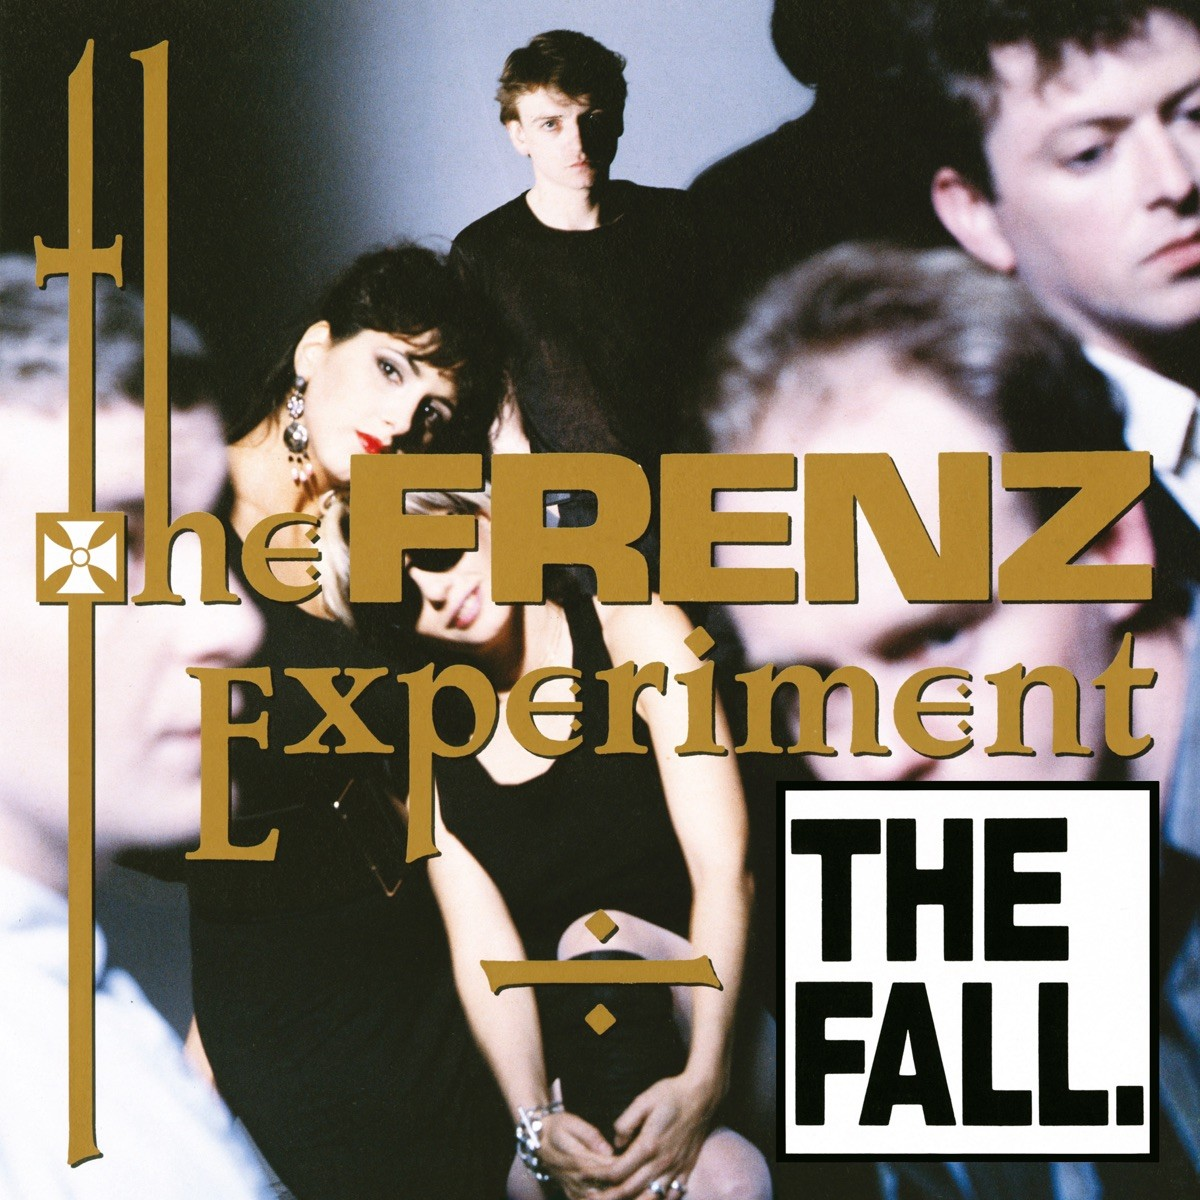 The Fall - The Frenz Experiment (Expanded Edition) VINYL - BBQ2171LP